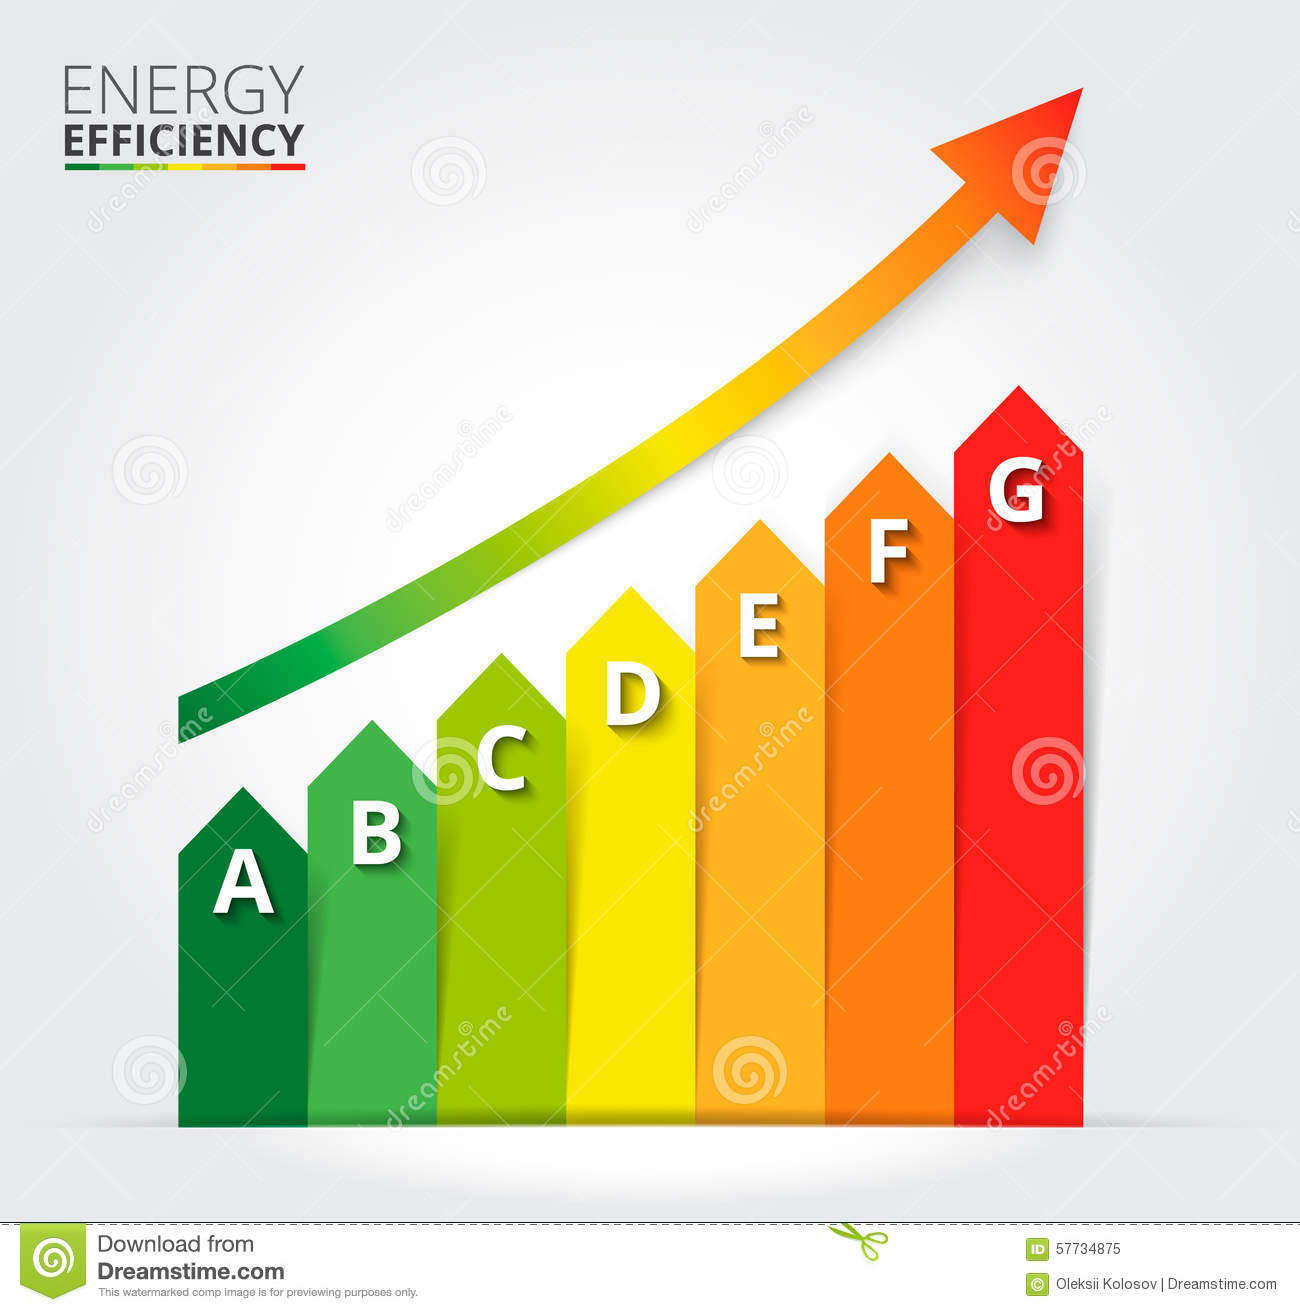 29,180 energy efficiency stock images are available royalty-free.